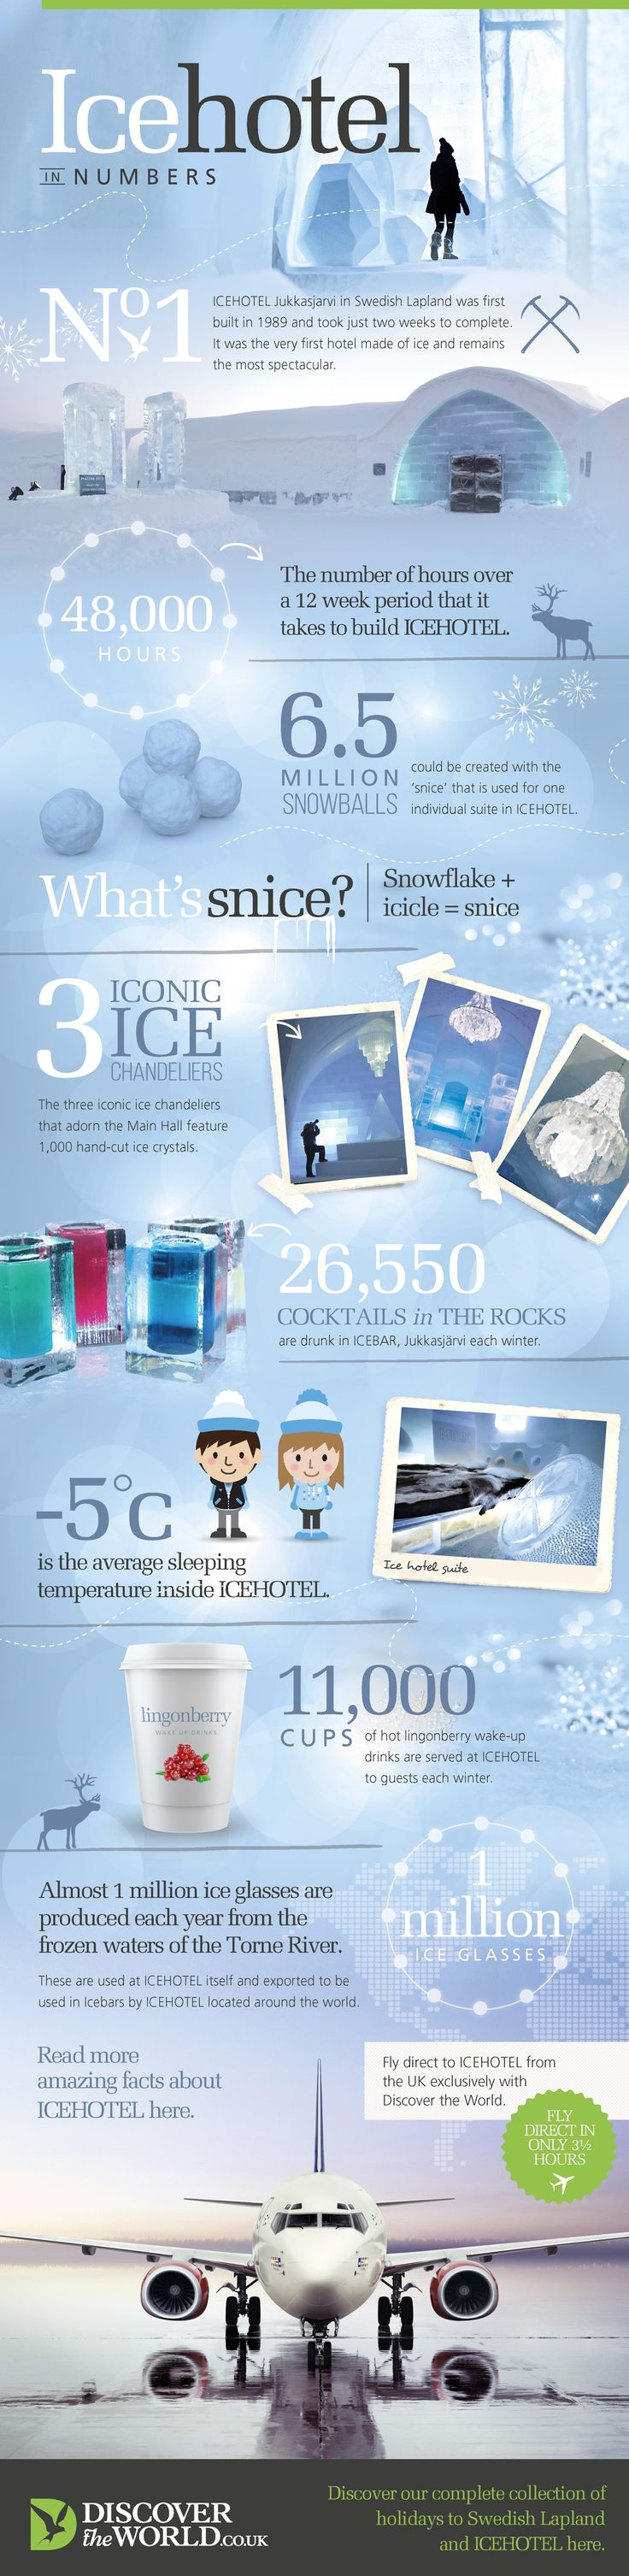 Fascinating #Facts about the #ICEHOTEL in Swedish Lapland. You can only fly there direct with us so book your Icehotel adventure now for this winter: https://www.discover-the-world.co.uk/destinations/icehotel-holidays